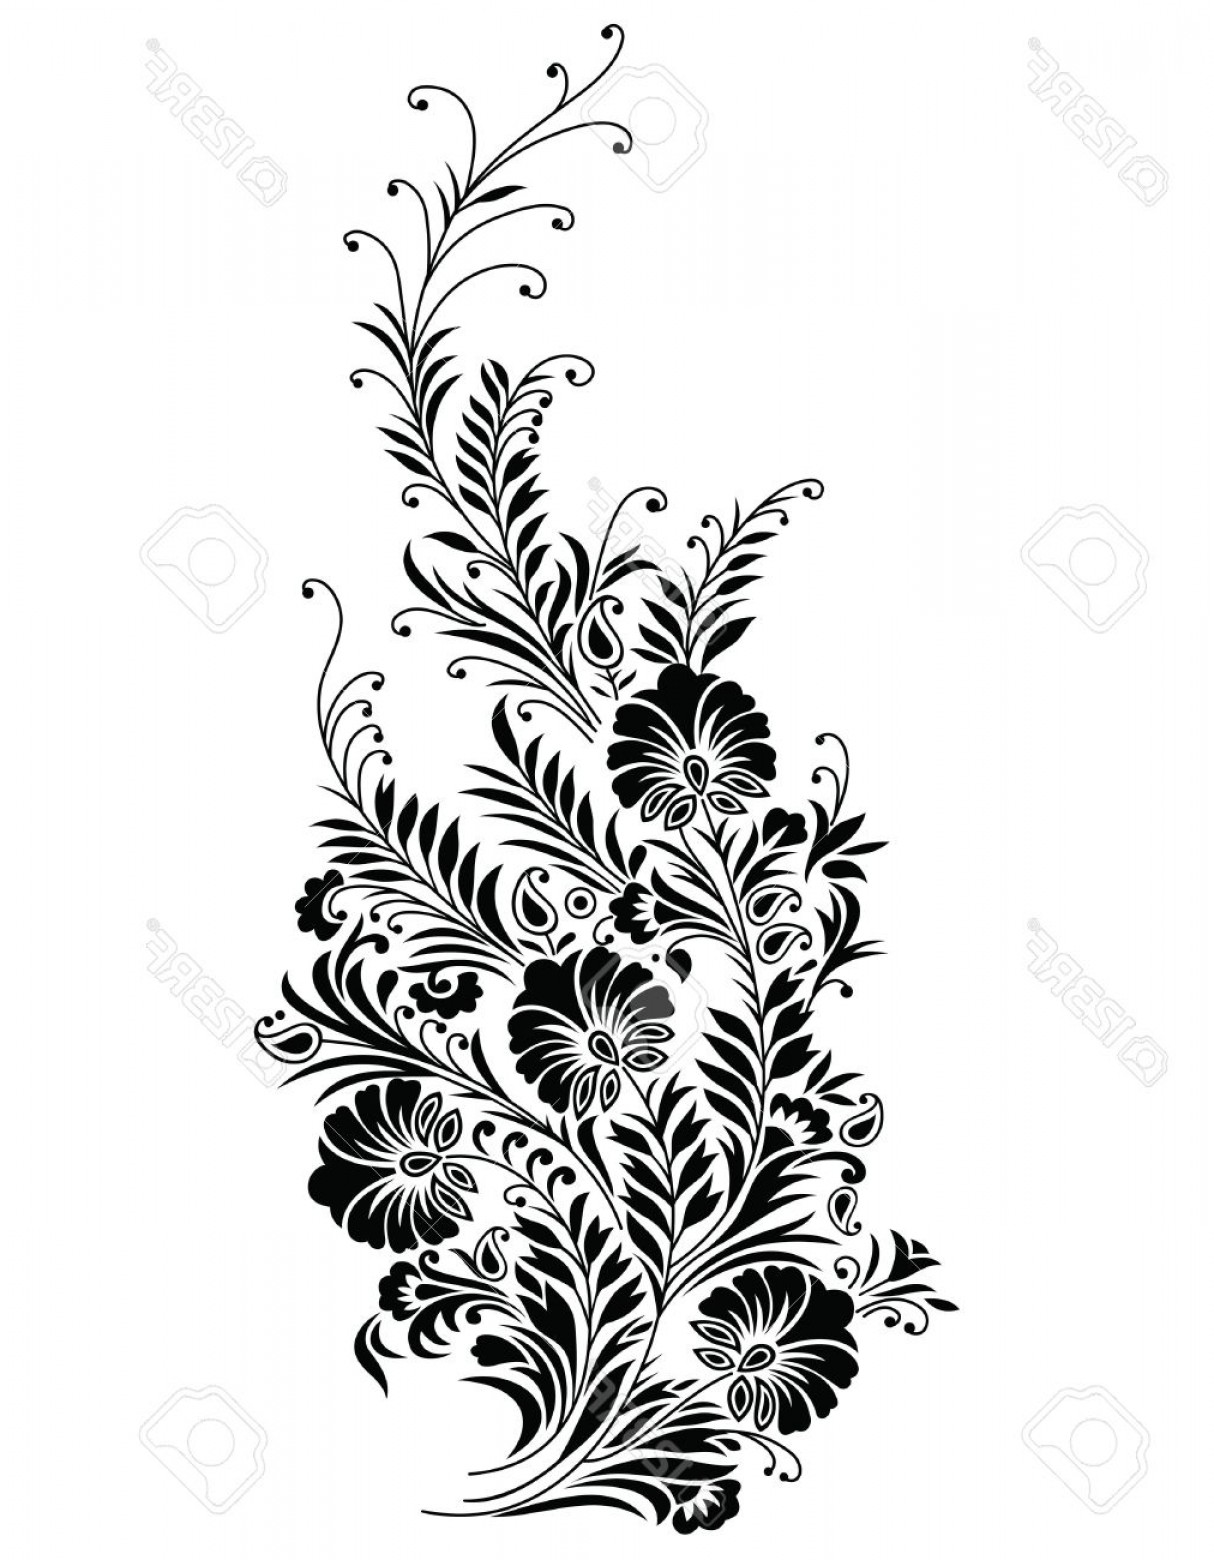 Vector Vine Tree: Photoabstract Black Floral Vine Design Element